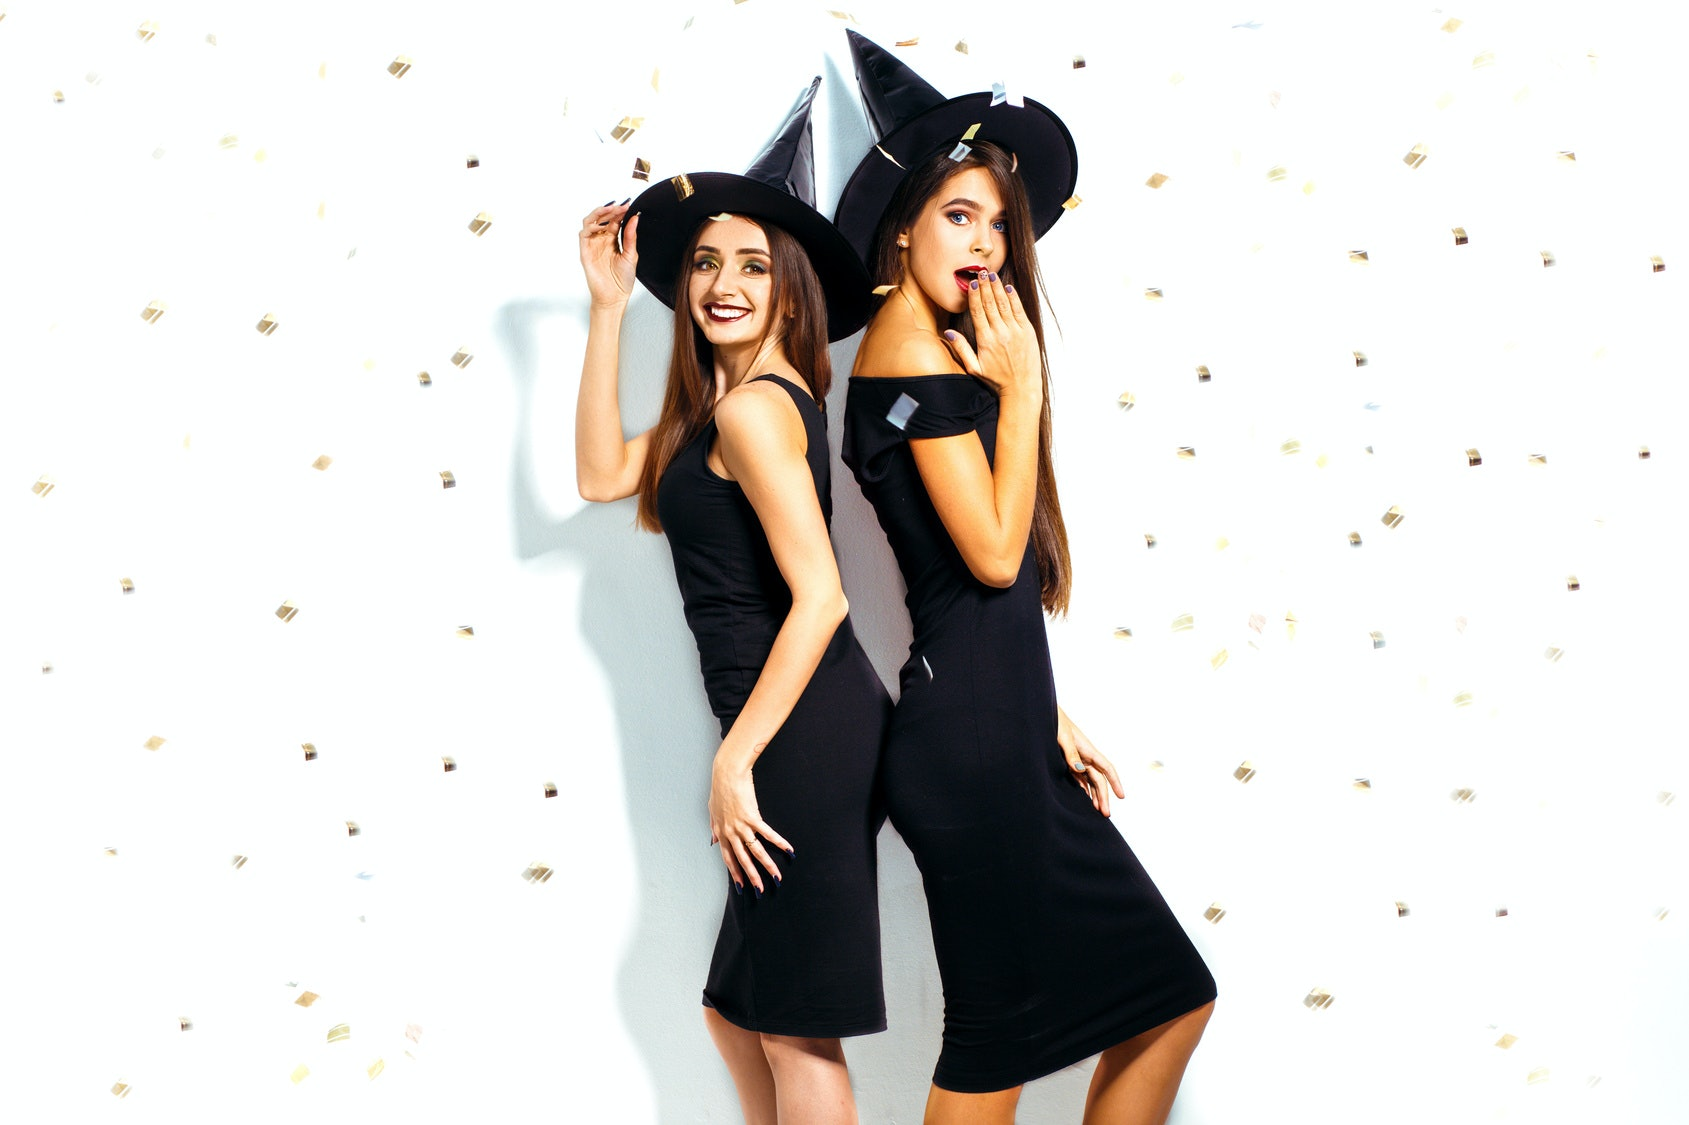 9 Little Black Dress Costume Ideas That Are Cute \u0026 Creative